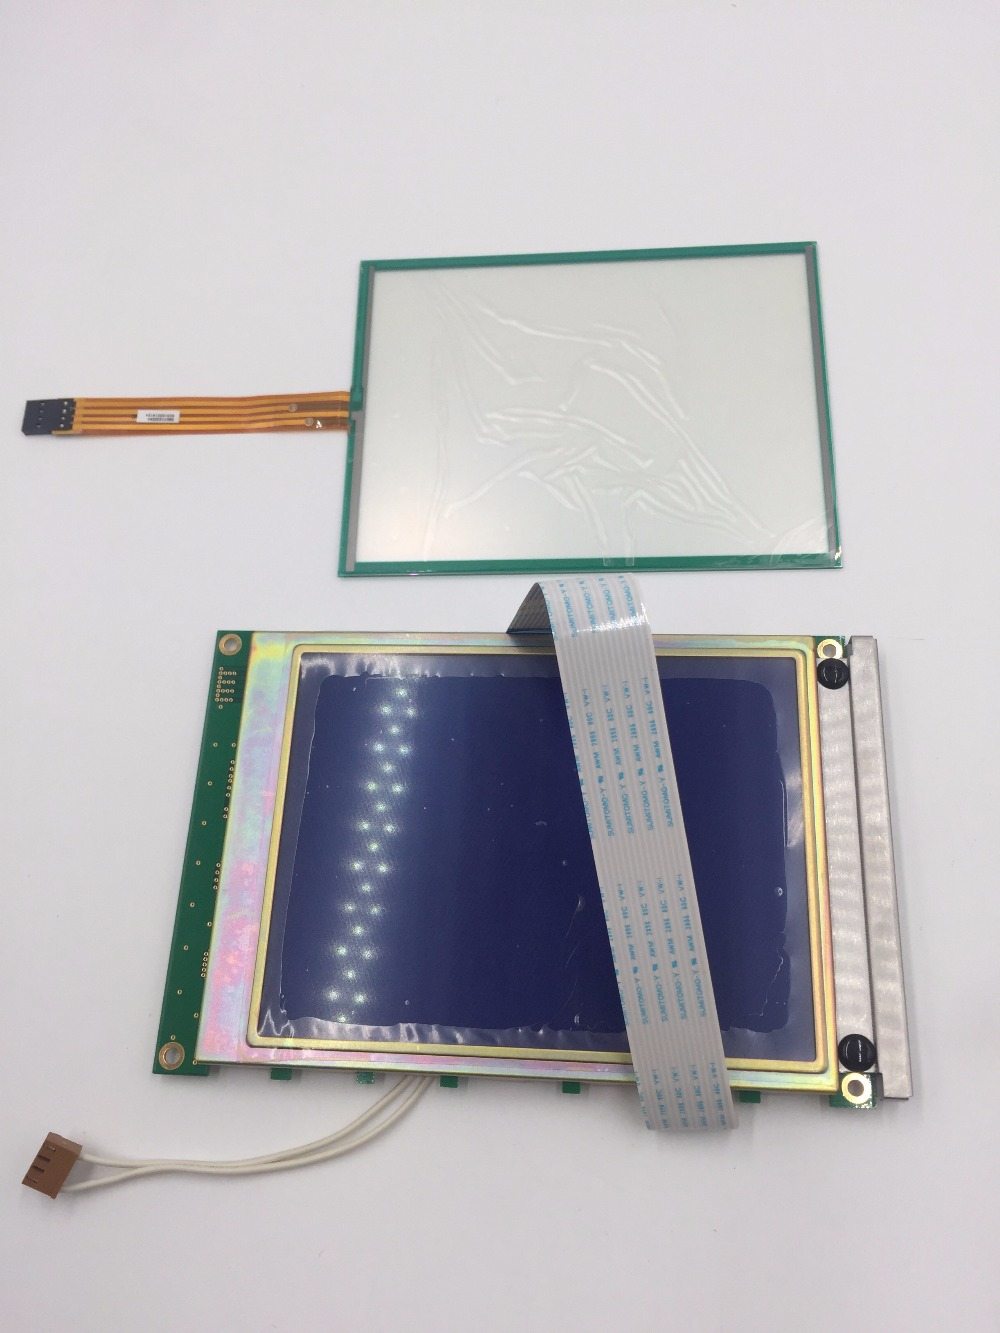 MG3224C3-SBF PC3224C3-2 STN 5.7 320*240 LCD PANEL with 12 months warranty New цена